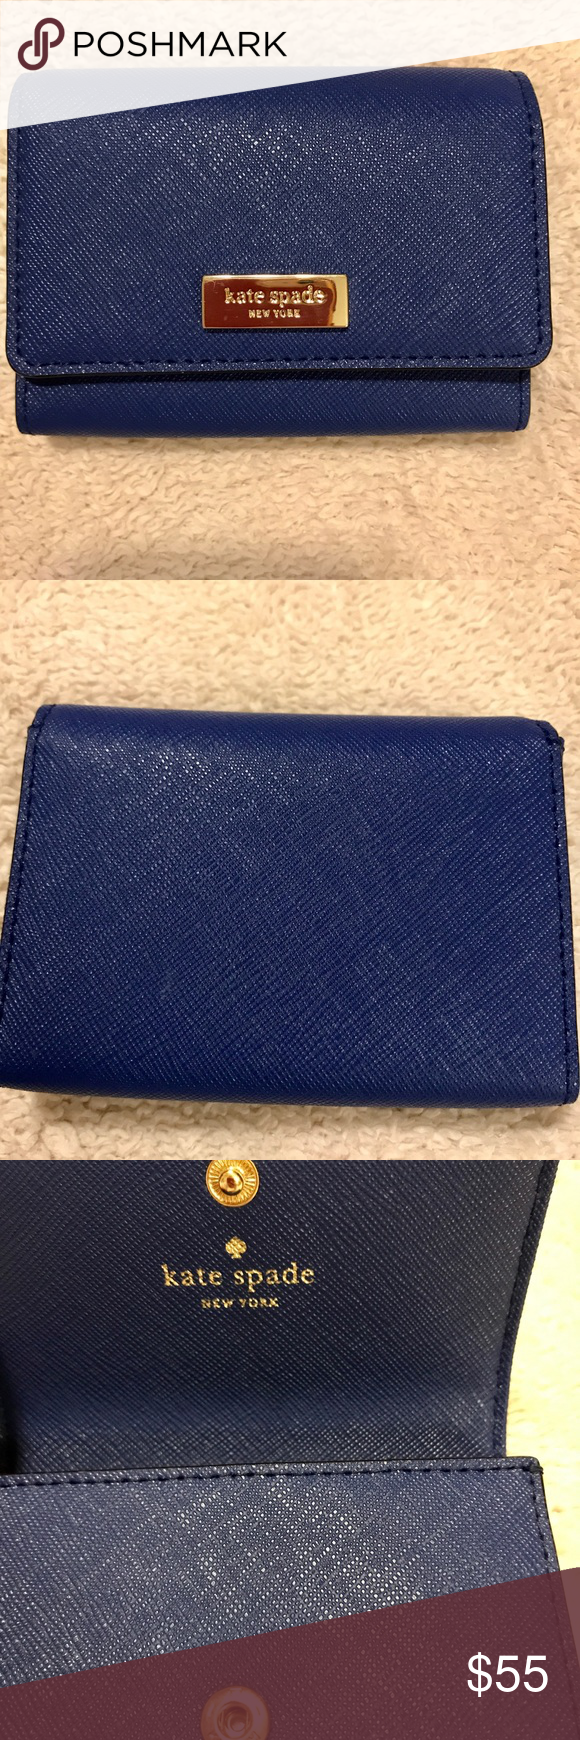 Kate Spade Business Card case Like new Blue business card or ...